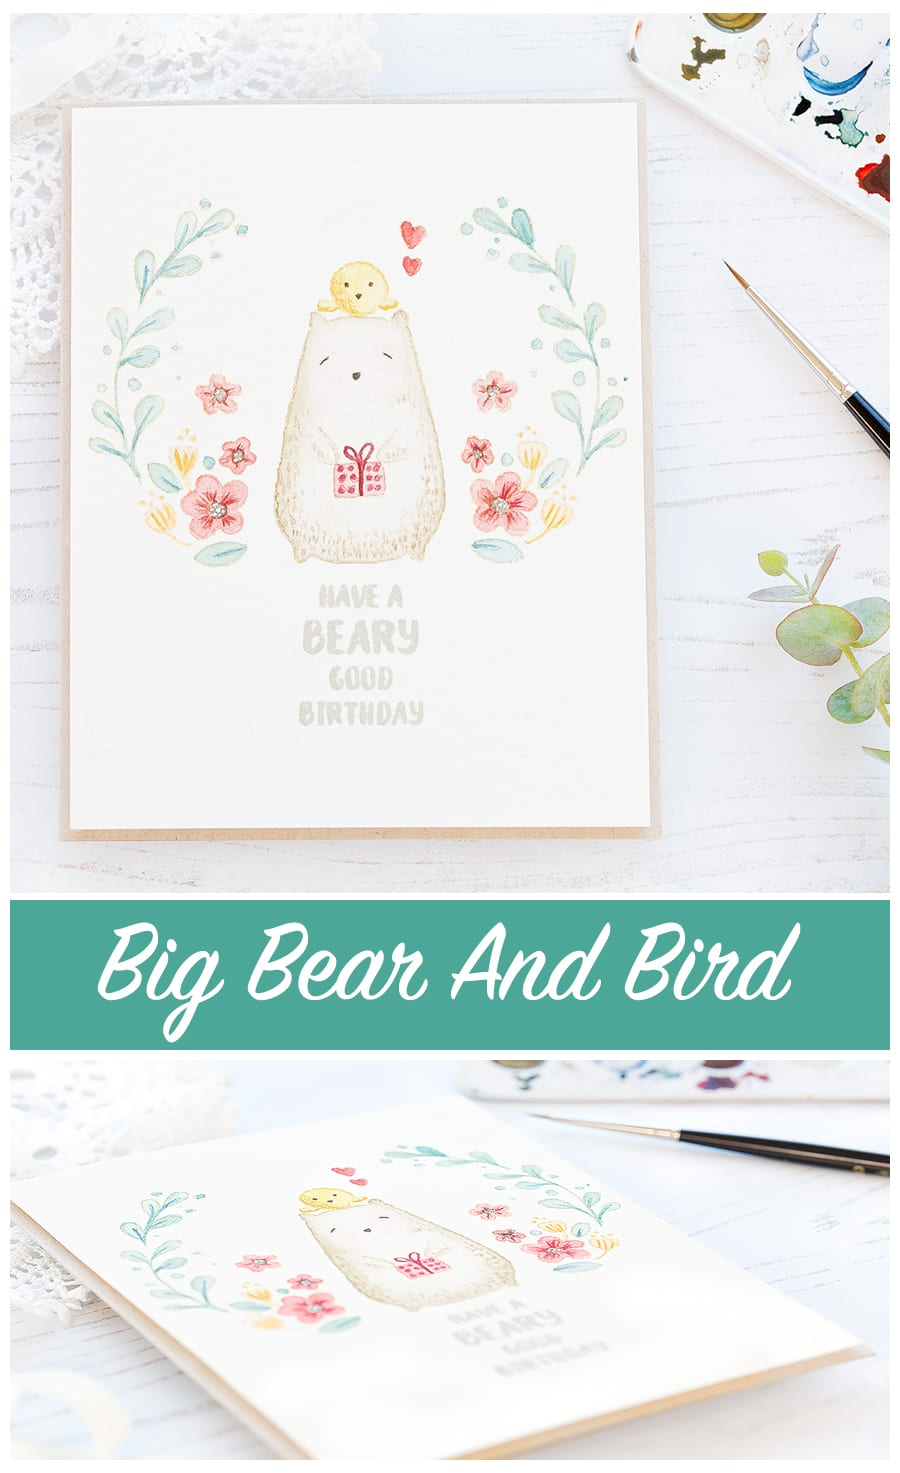 Video how to - soft no line watercoloring by Debby Hughes of the lovely Bear And Bird set from Waffle Flower. Find out more by clicking on the following link: http://limedoodledesign.com/2017/01/video-how-to-soft-no-line-watercoloring/